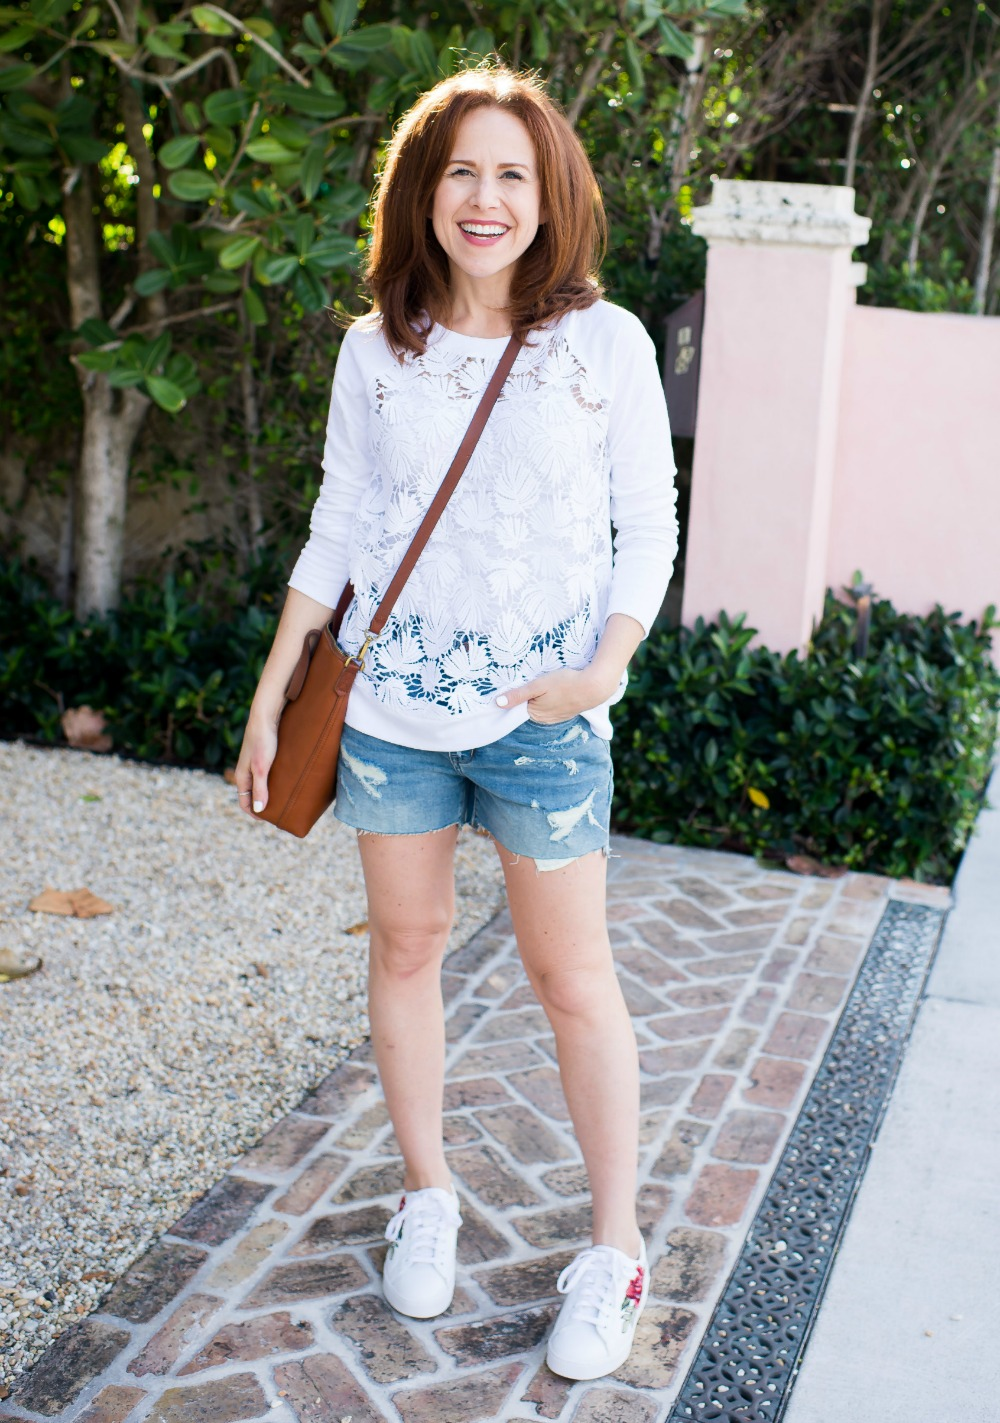 how to style a sweatshirt for spring - Spring Lace Sweatshirt by popular Florida style blogger The Modern Savvy